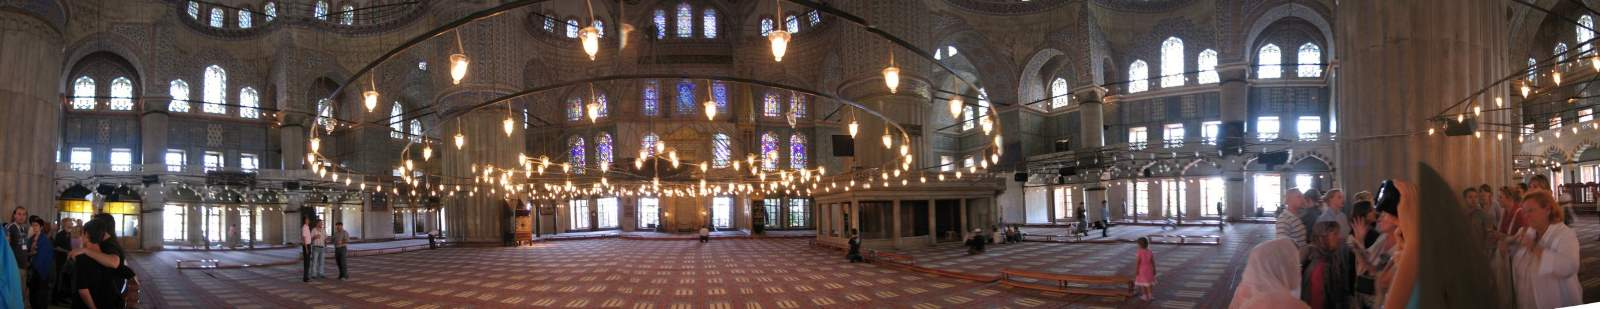 Blue Mosque interior panorama